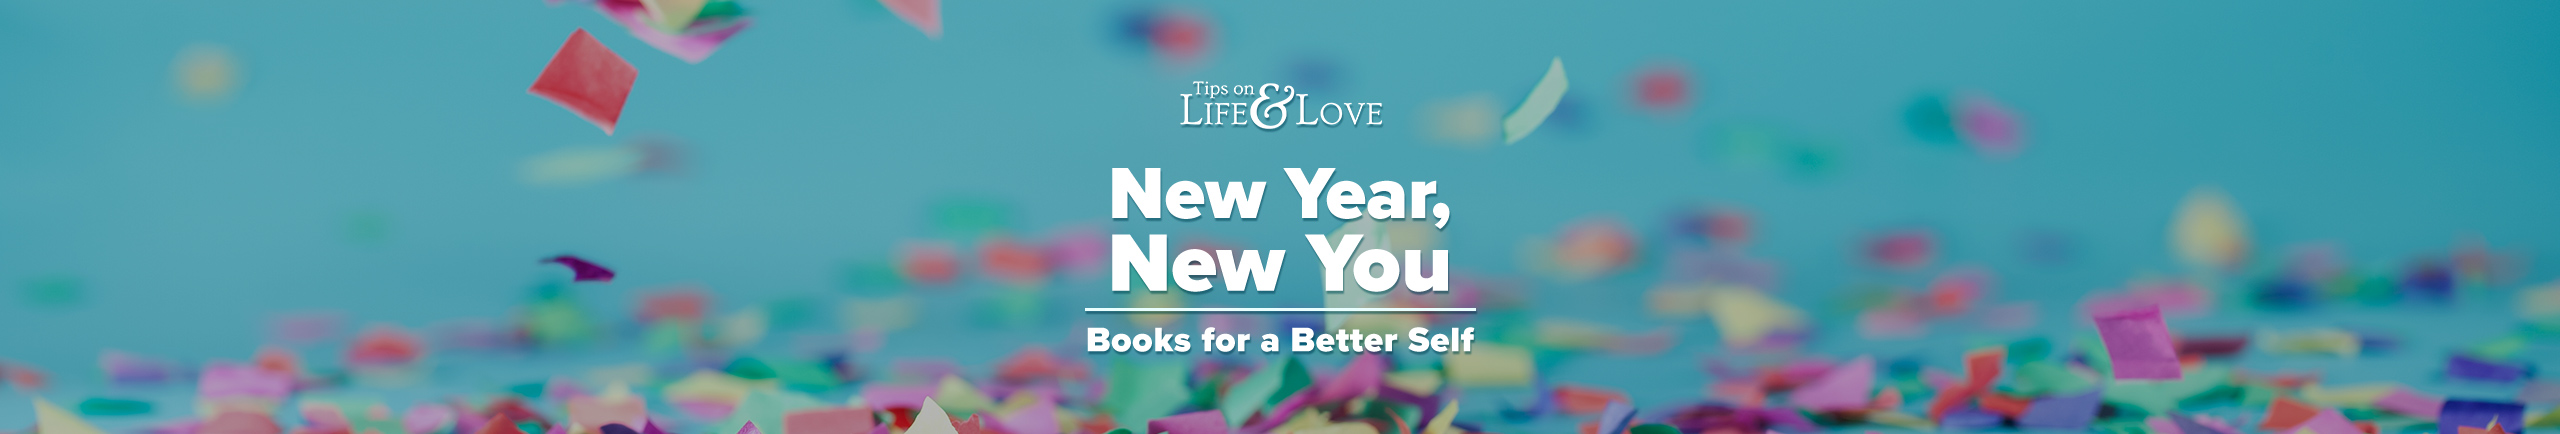 Tips on Life & Love New Year New You Books for a Better Self